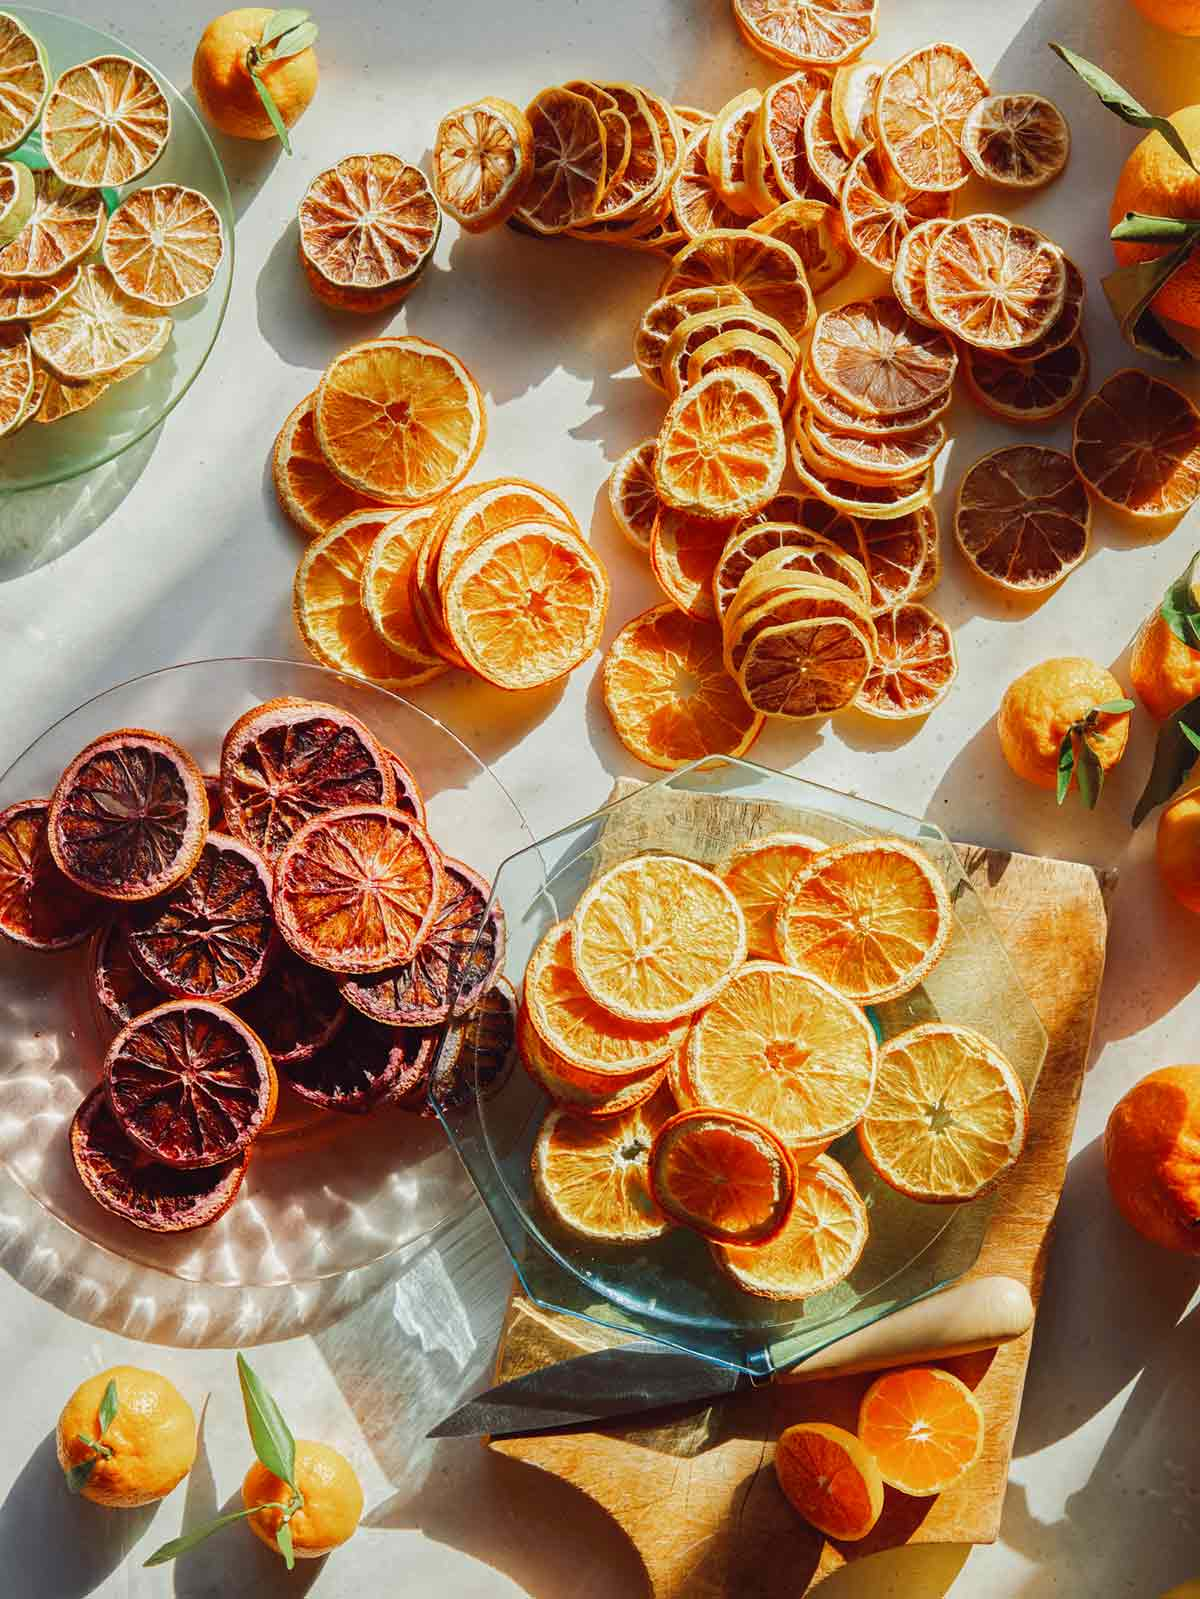 Dehydrated citrus wheels spread out on a surface on plates.